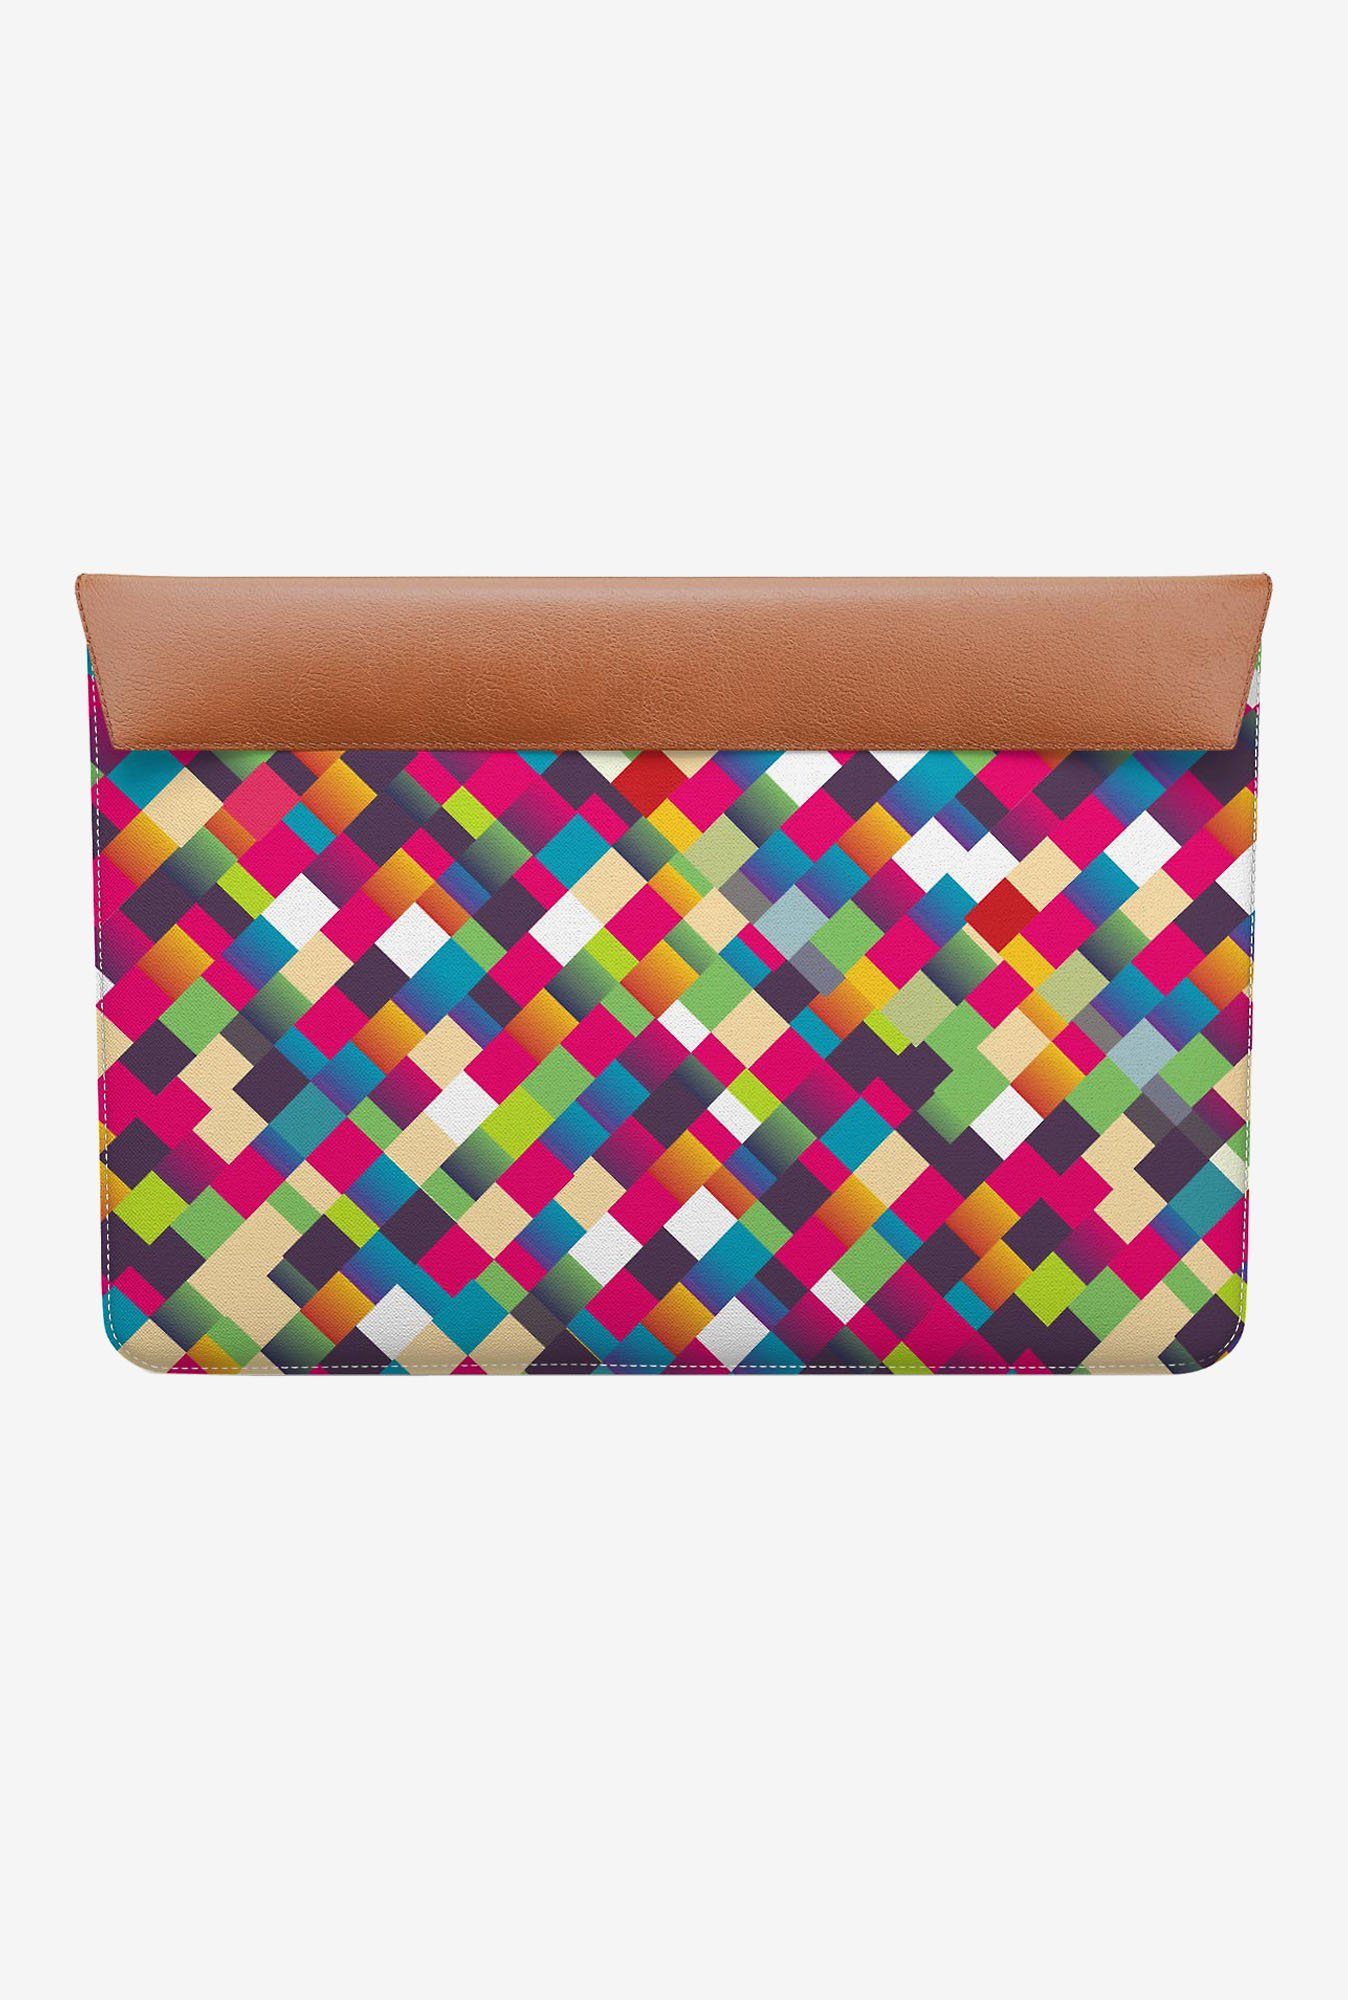 DailyObjects Sweet Pattern MacBook Pro 13 Envelope Sleeve